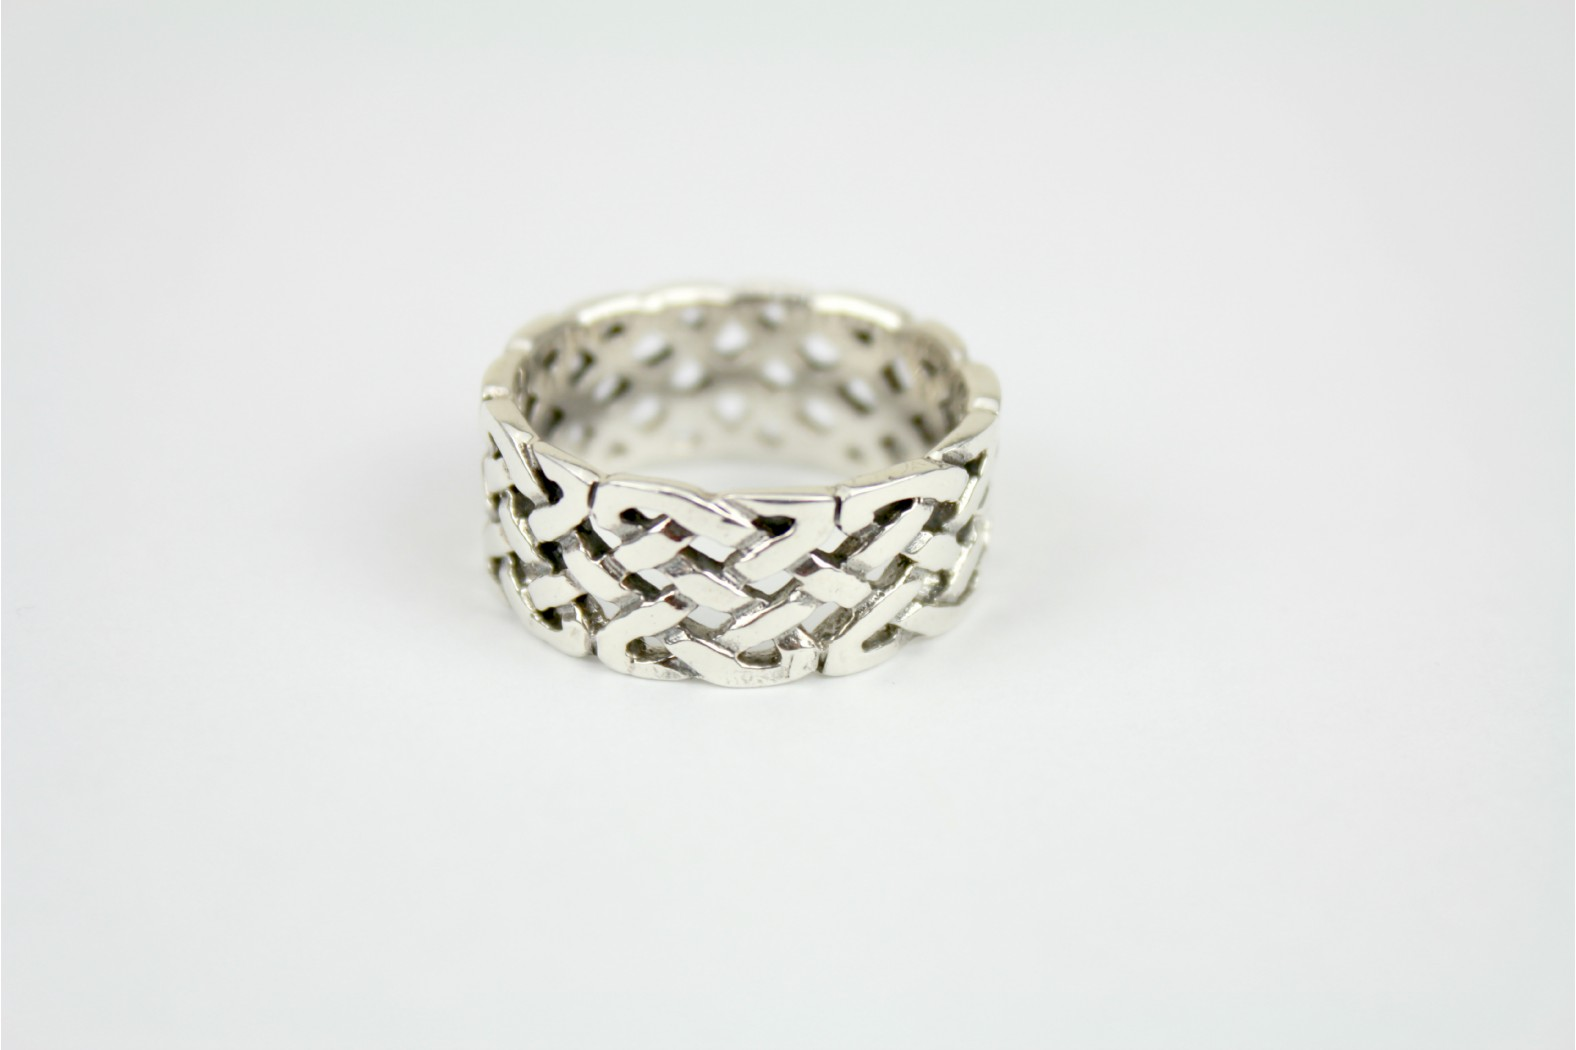 Wide chunky band cut out Celtic style size 10 or T. DELIVERY 7 WORKING DAYS